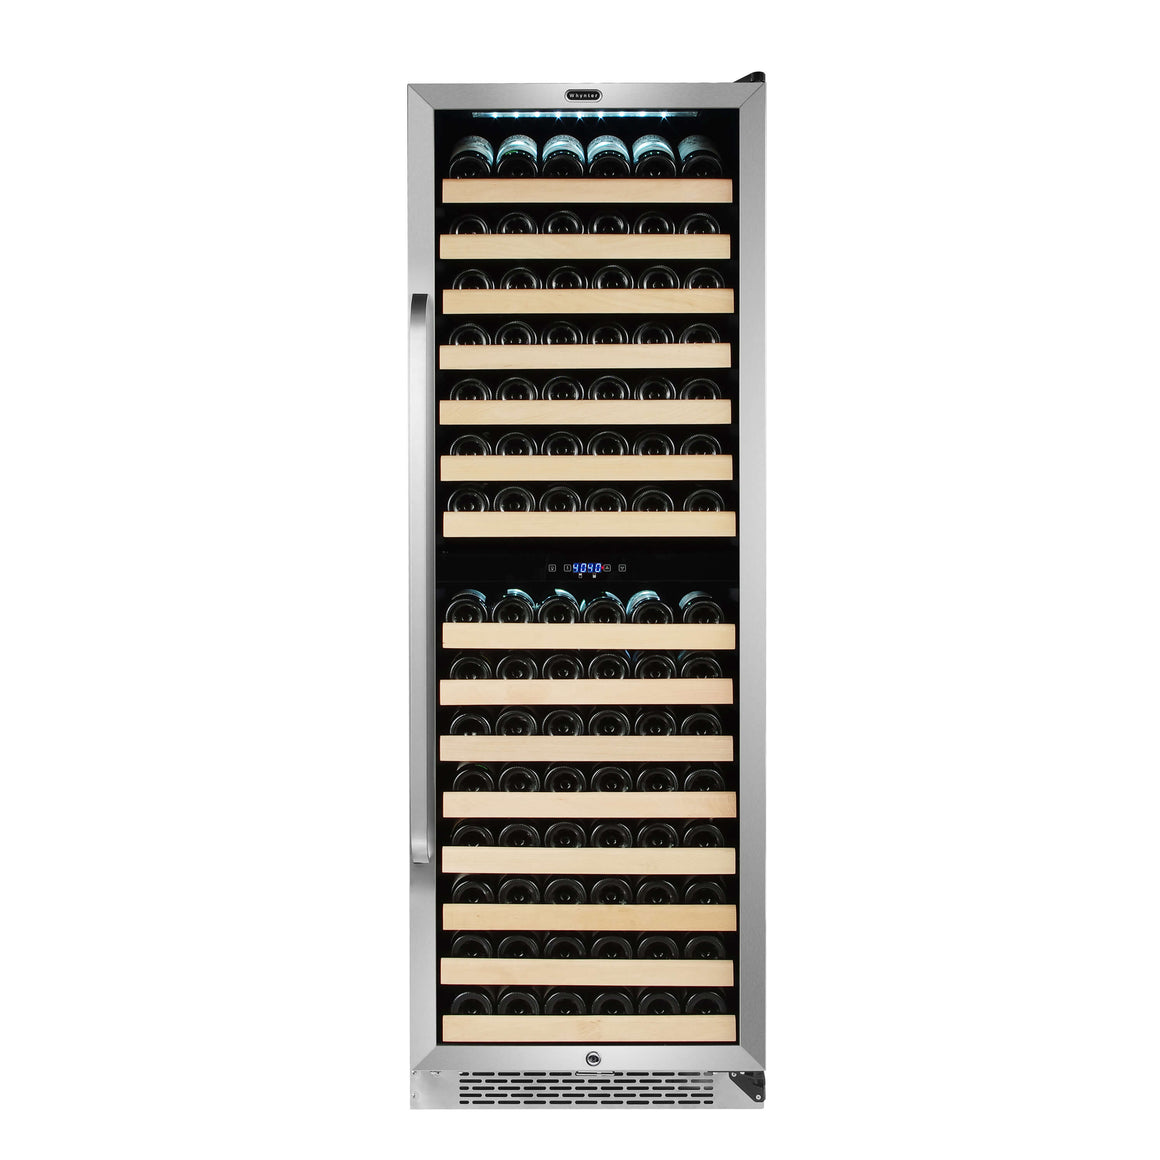 Whynter 164 Bottle Built-in Stainless Steel Dual Zone Compressor Wine Refrigerator with Display Rack and LED display - BWR-1642DZ